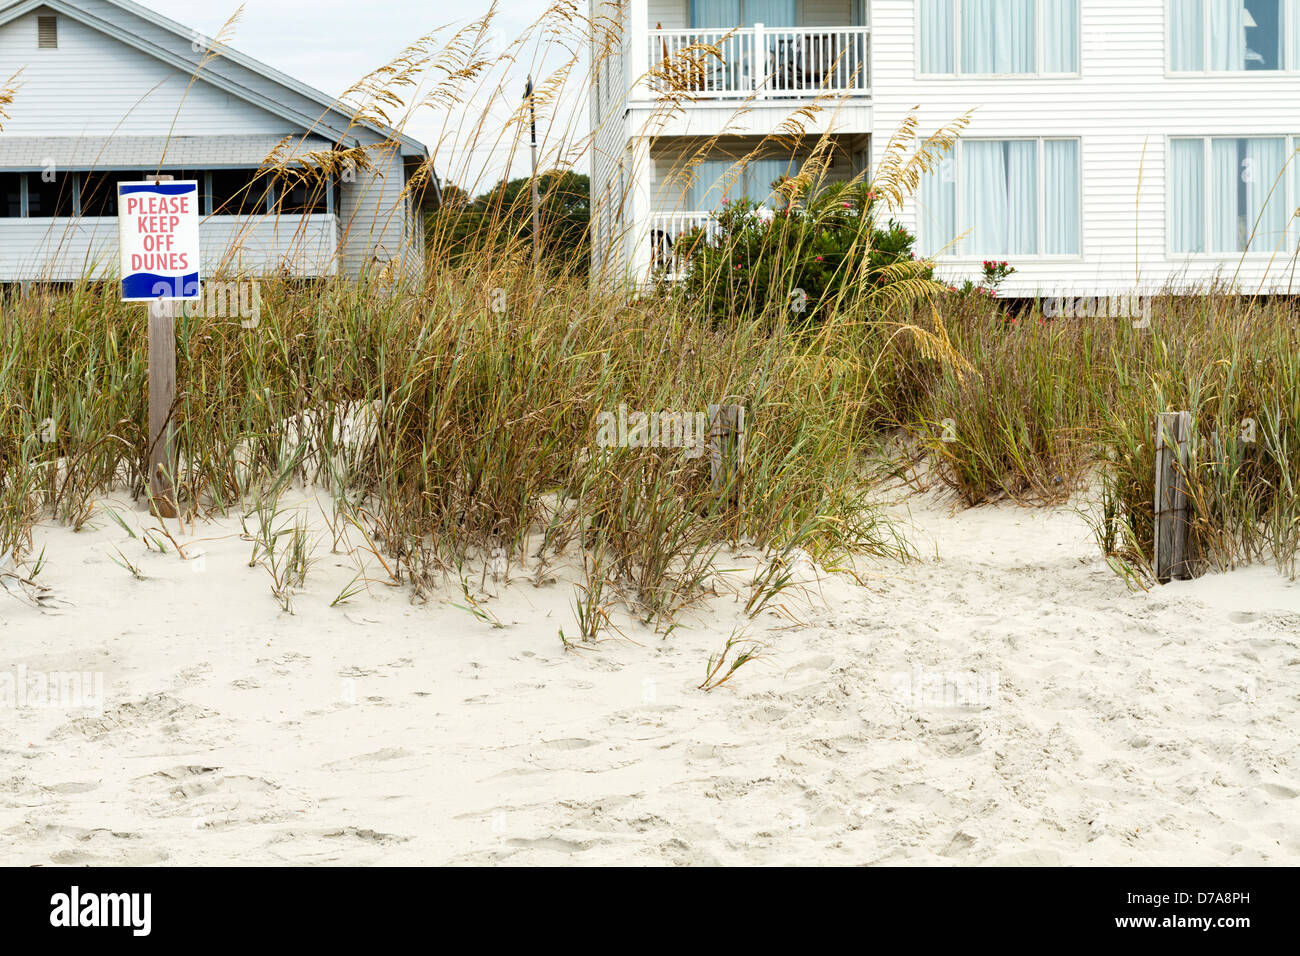 A ' Please Keep Off Dunes' sign on the left with beach front houses in the background. 2 wooden post guide - Stock Image